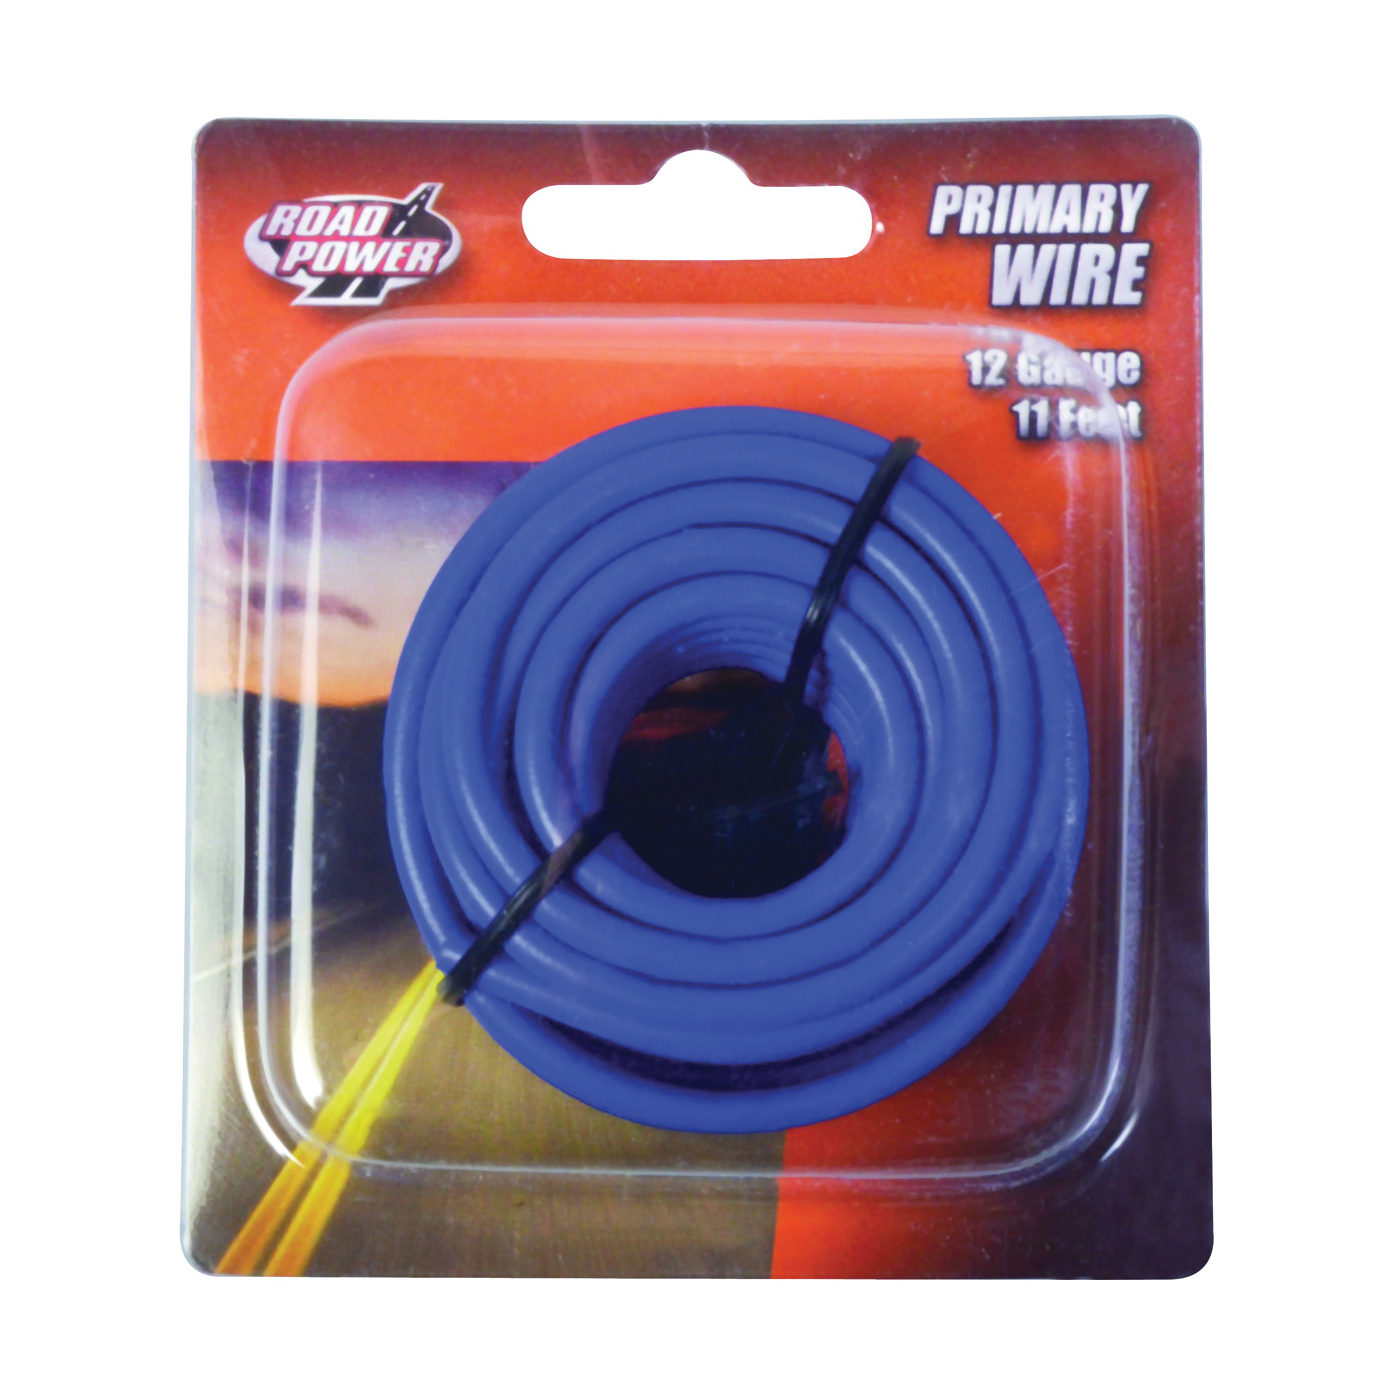 Picture of CCI Road Power 55671633/12-1-12 Electrical Wire, 12 AWG Wire, 25 VAC, 60 VDC, Copper Conductor, Blue Sheath